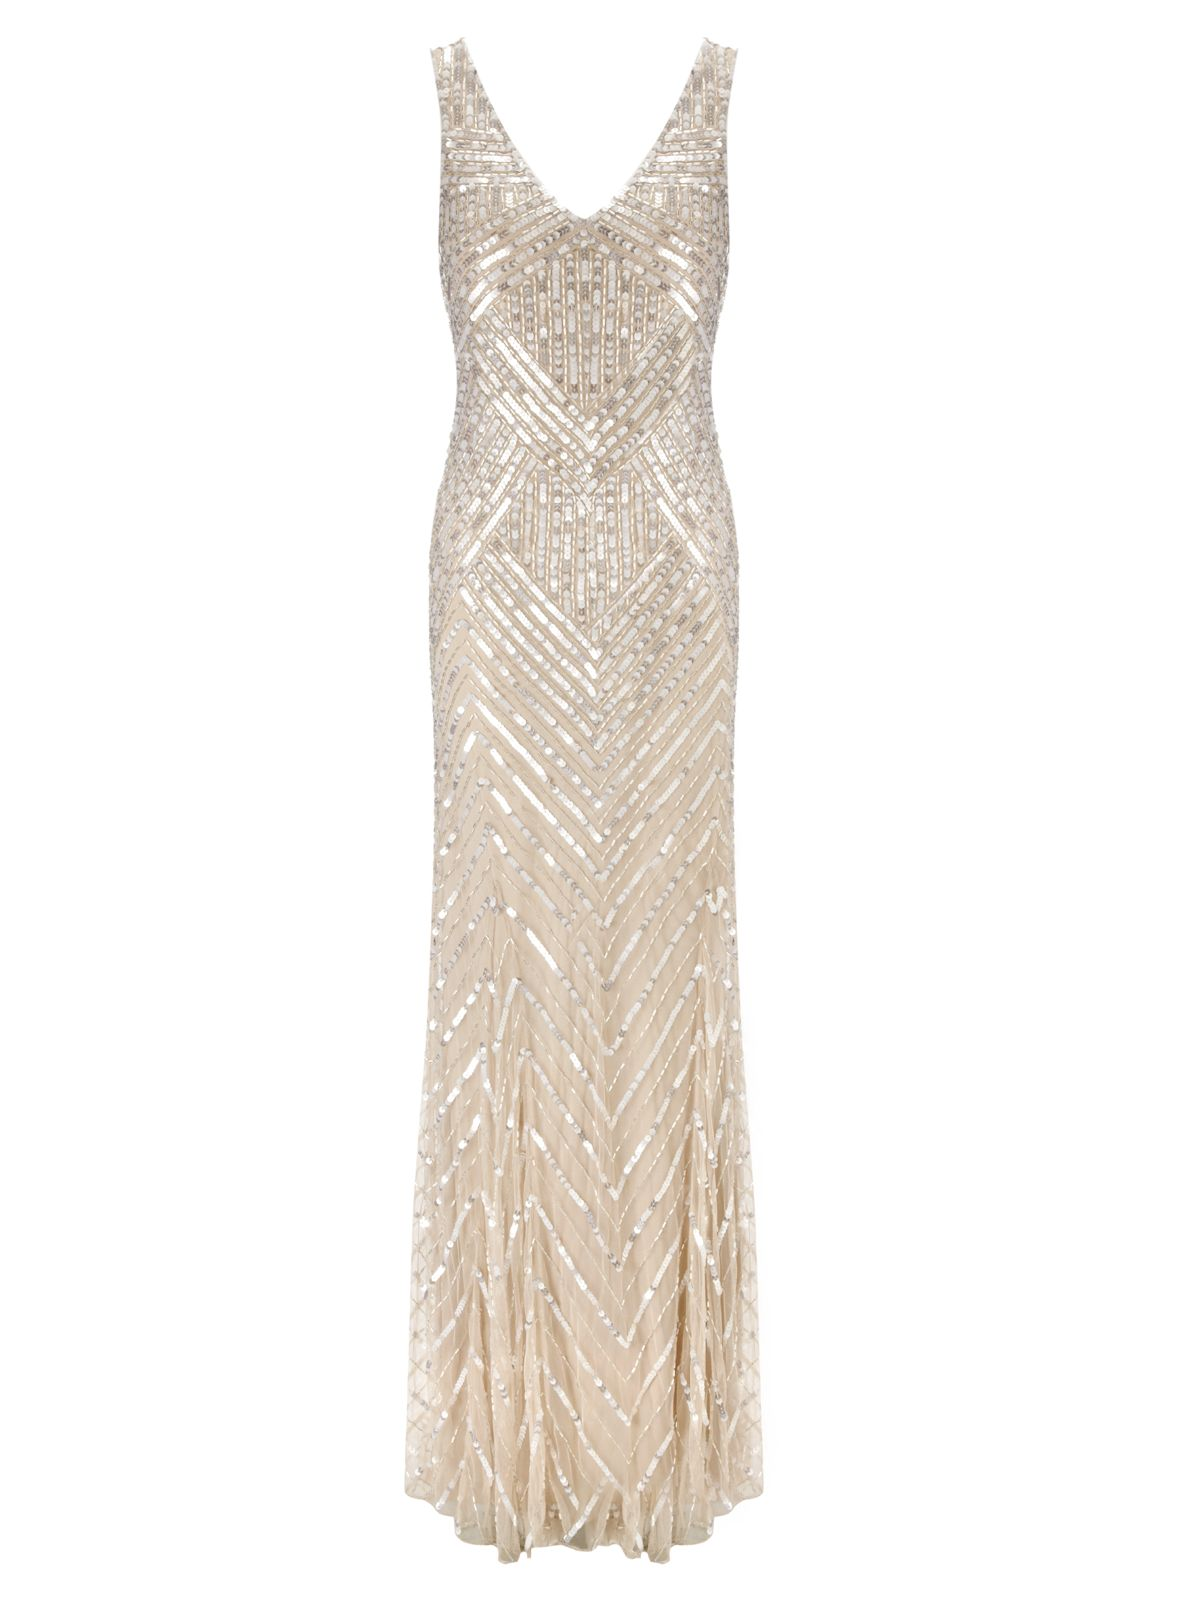 1920s Style Evening Dresses For Sale Uk - Long Dresses Online